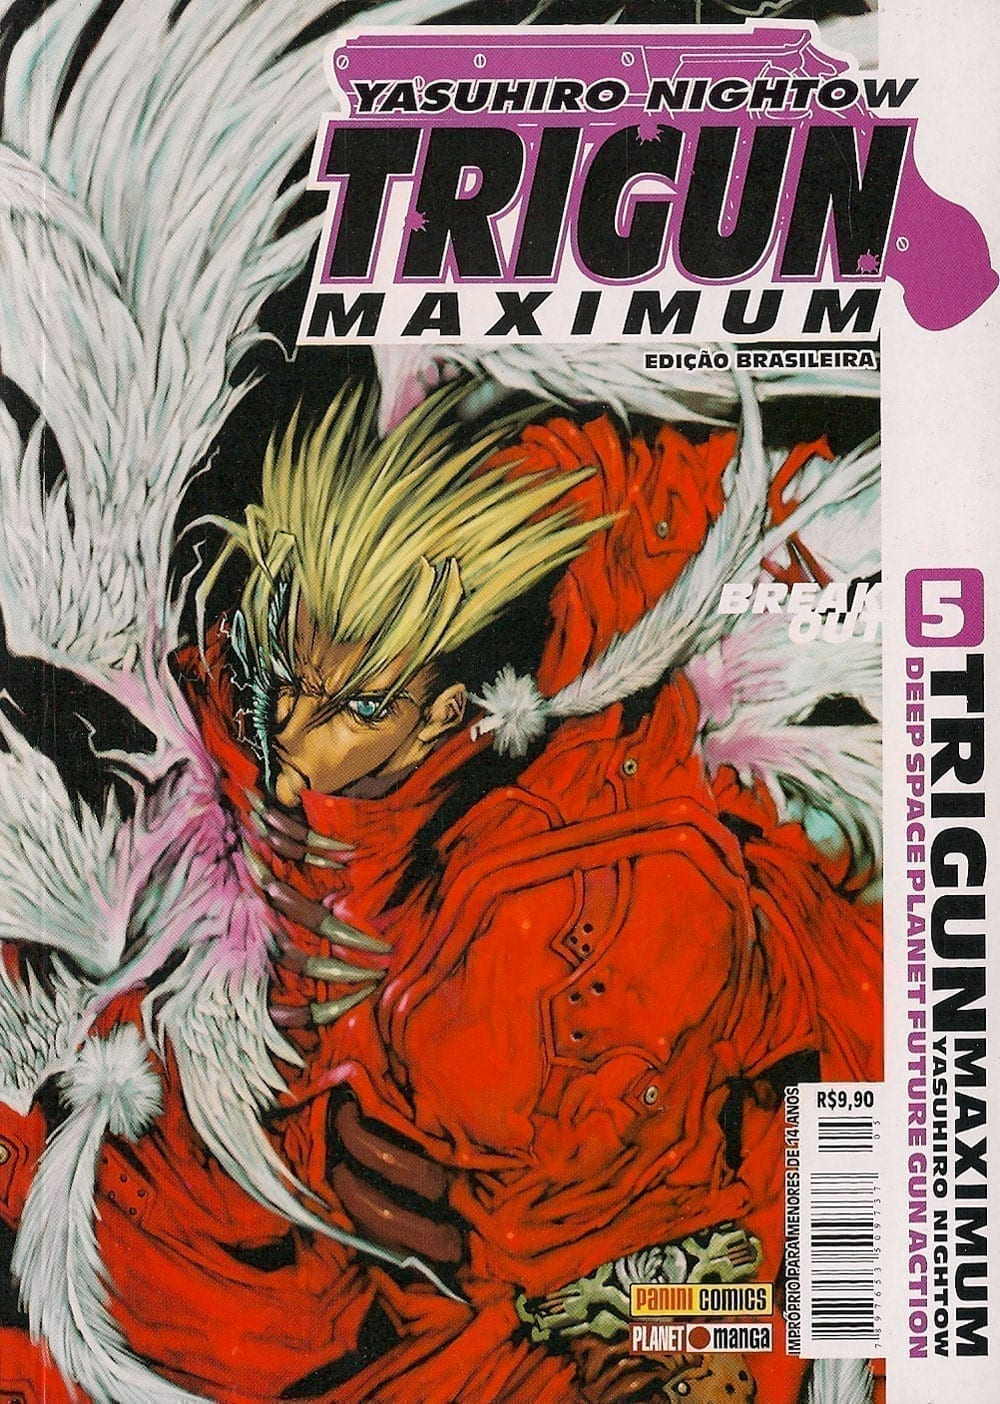 Capa: Trigun Maximum 5